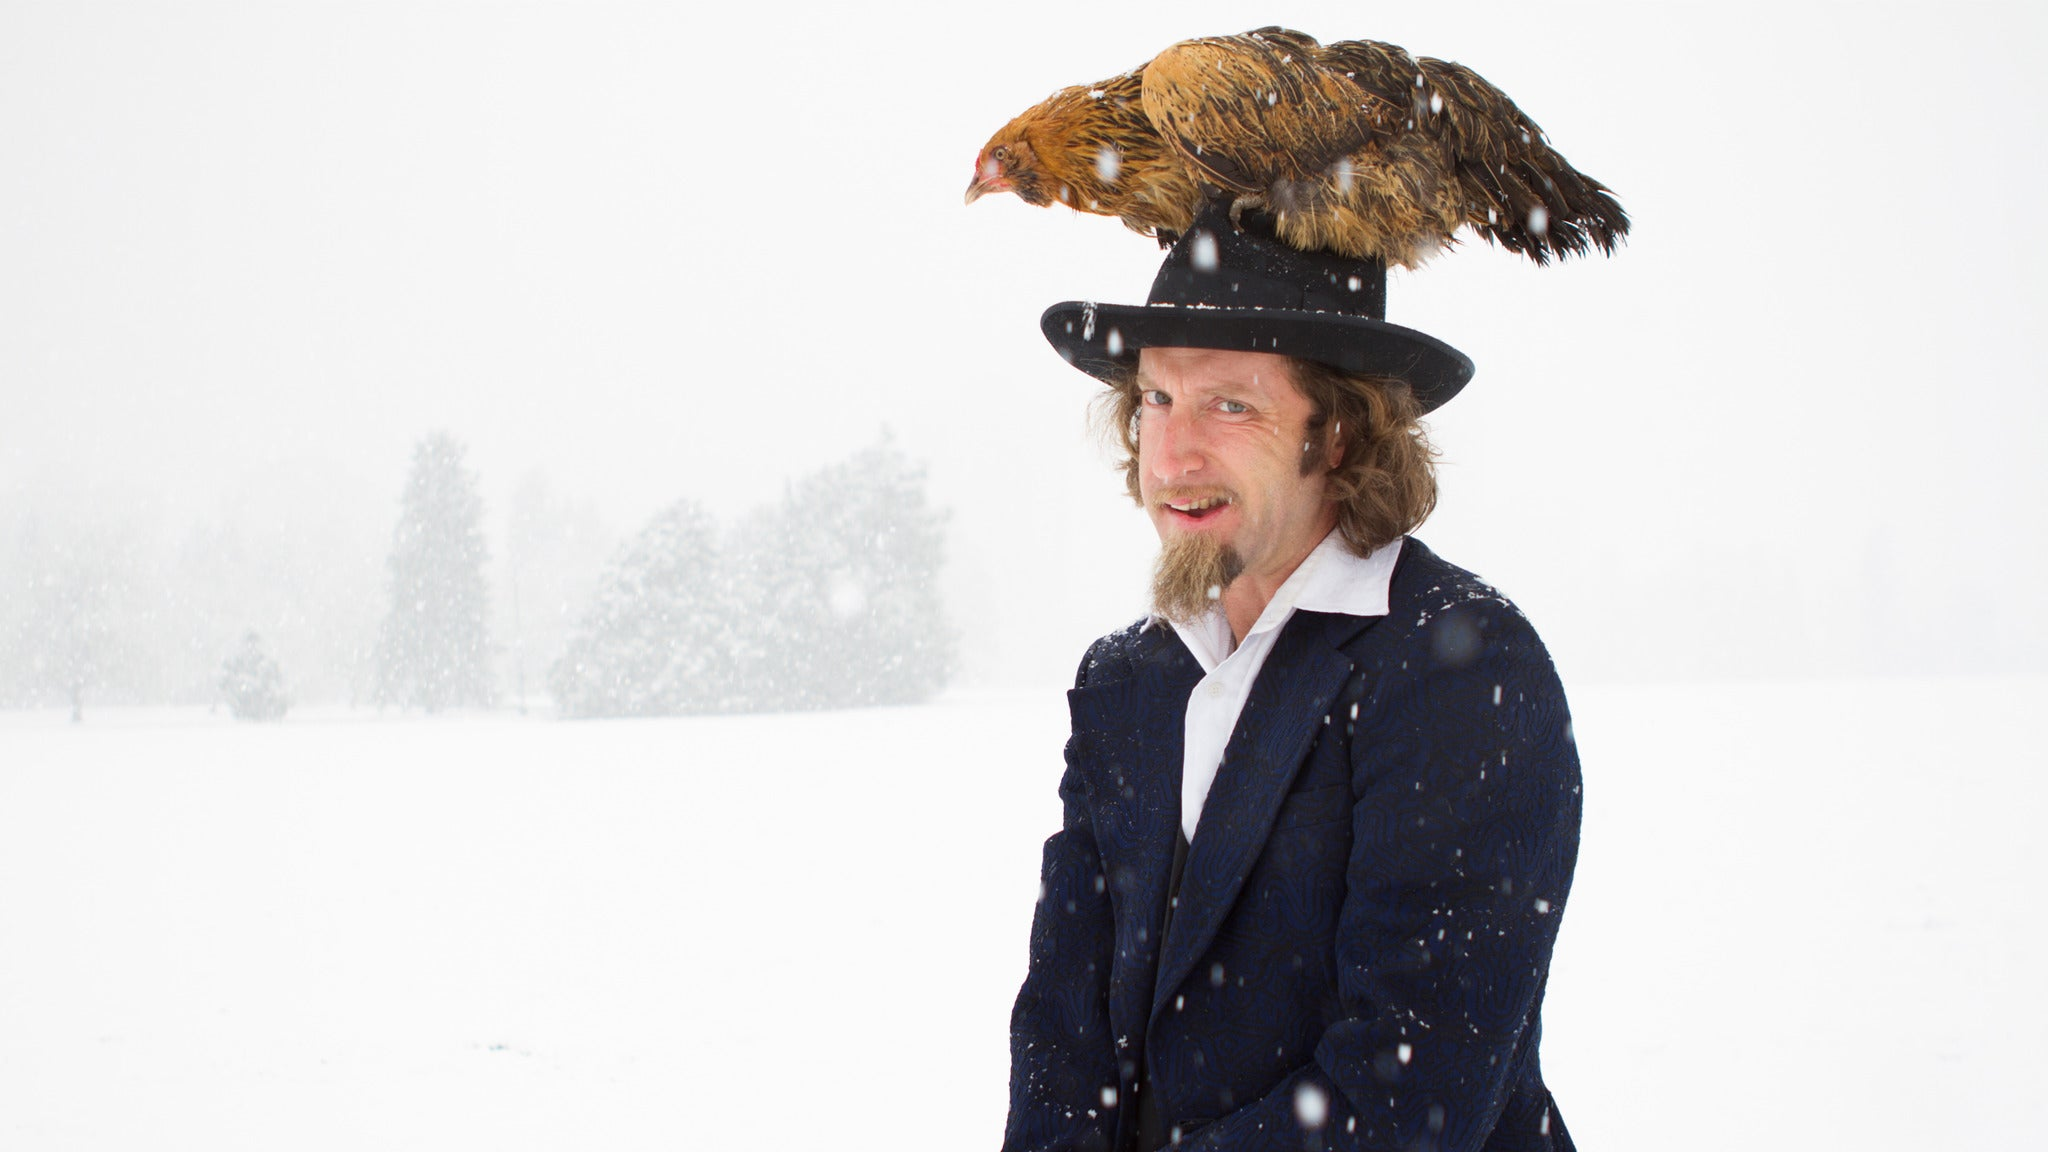 Josh Blue at Punch Line Comedy Club - San Francisco - San Francisco, CA 94111